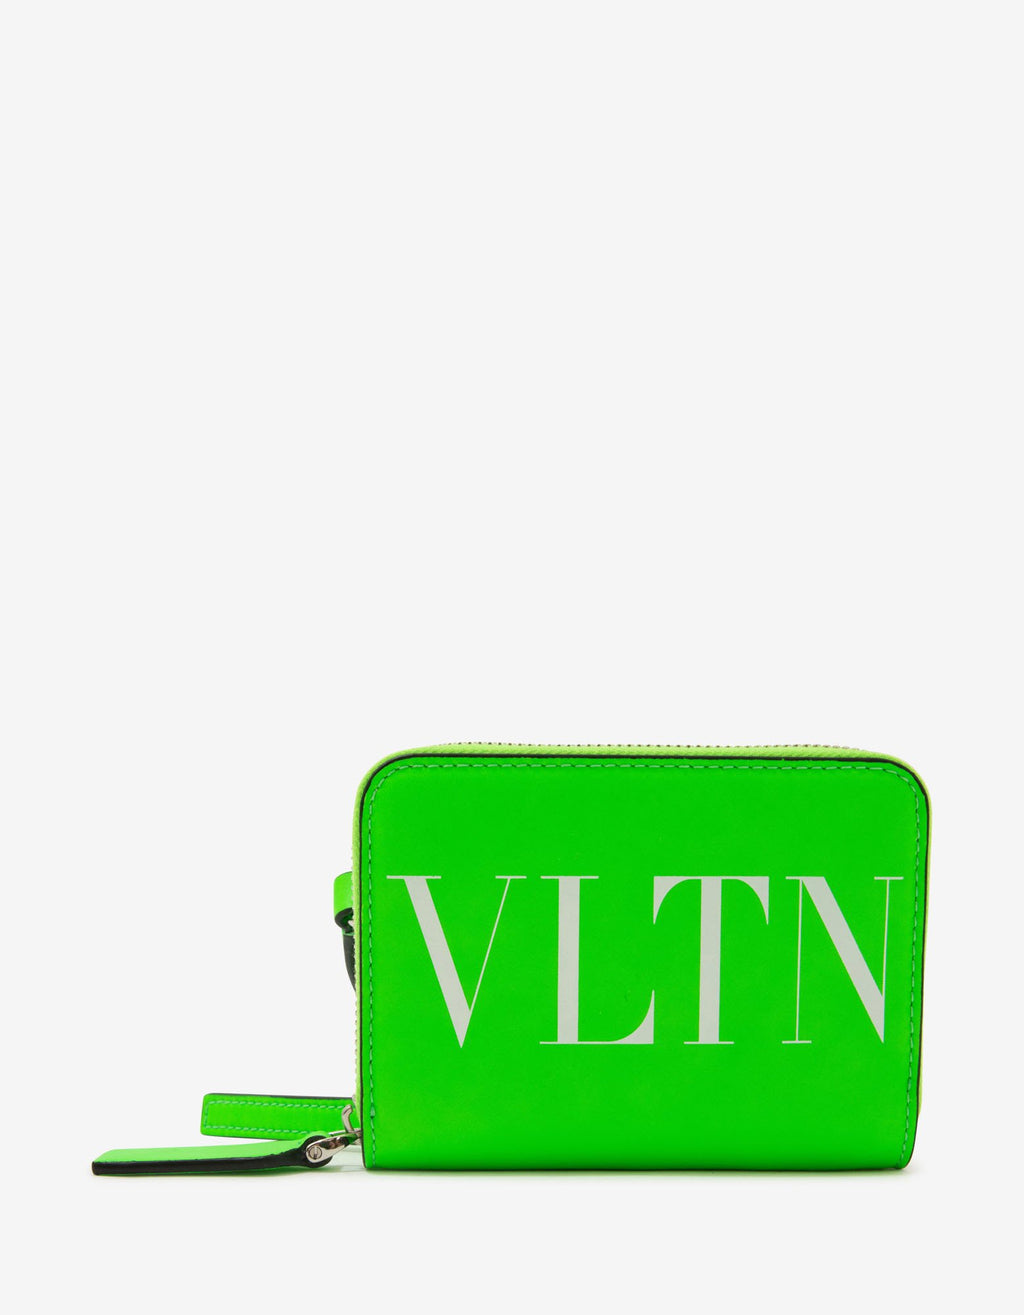 Neon Green VLTN Wallet with Neck Strap -